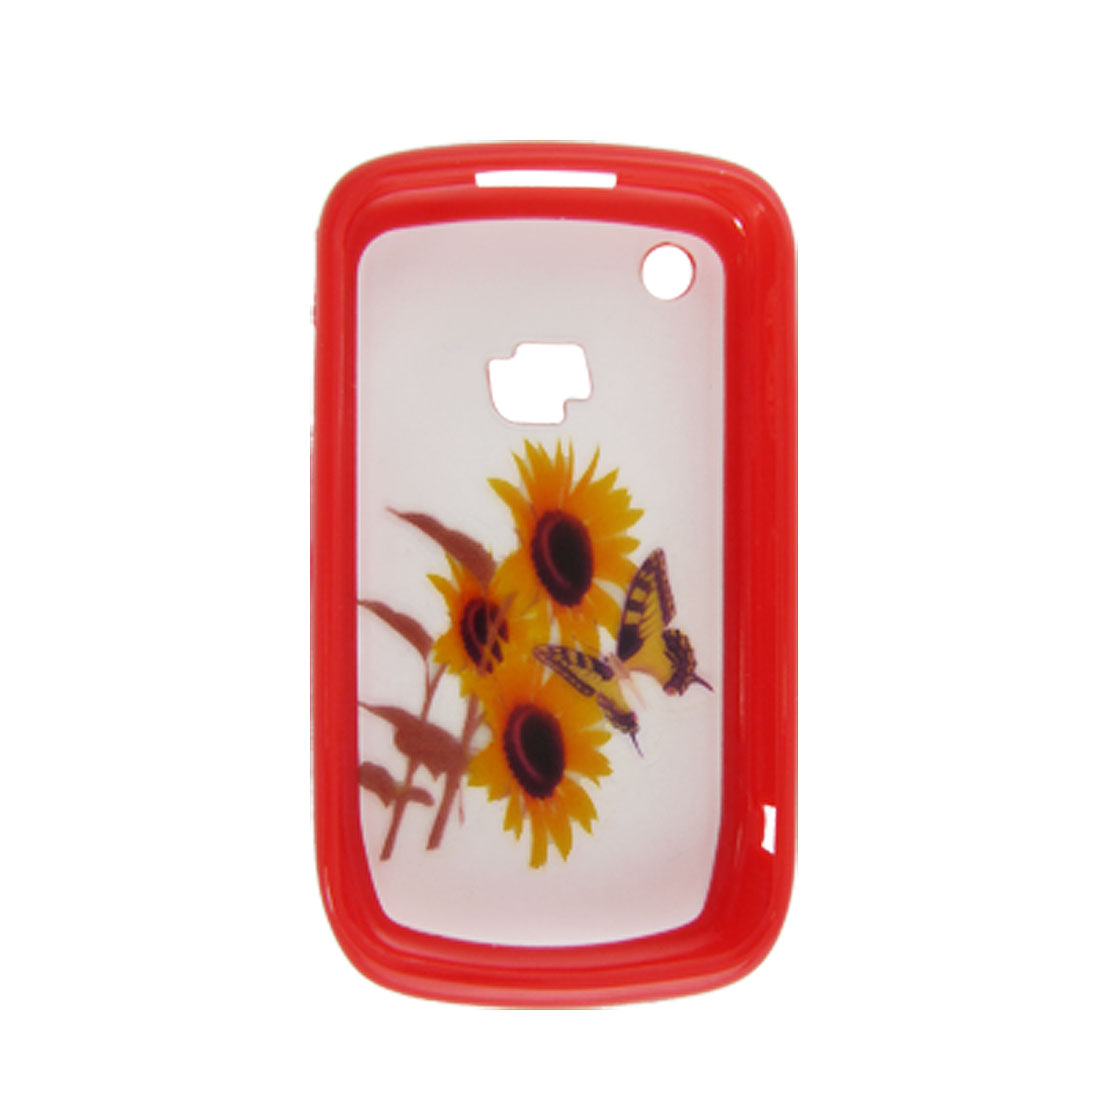 Butterfly Sunflower Plastic Case for Blackberry 8520 Red